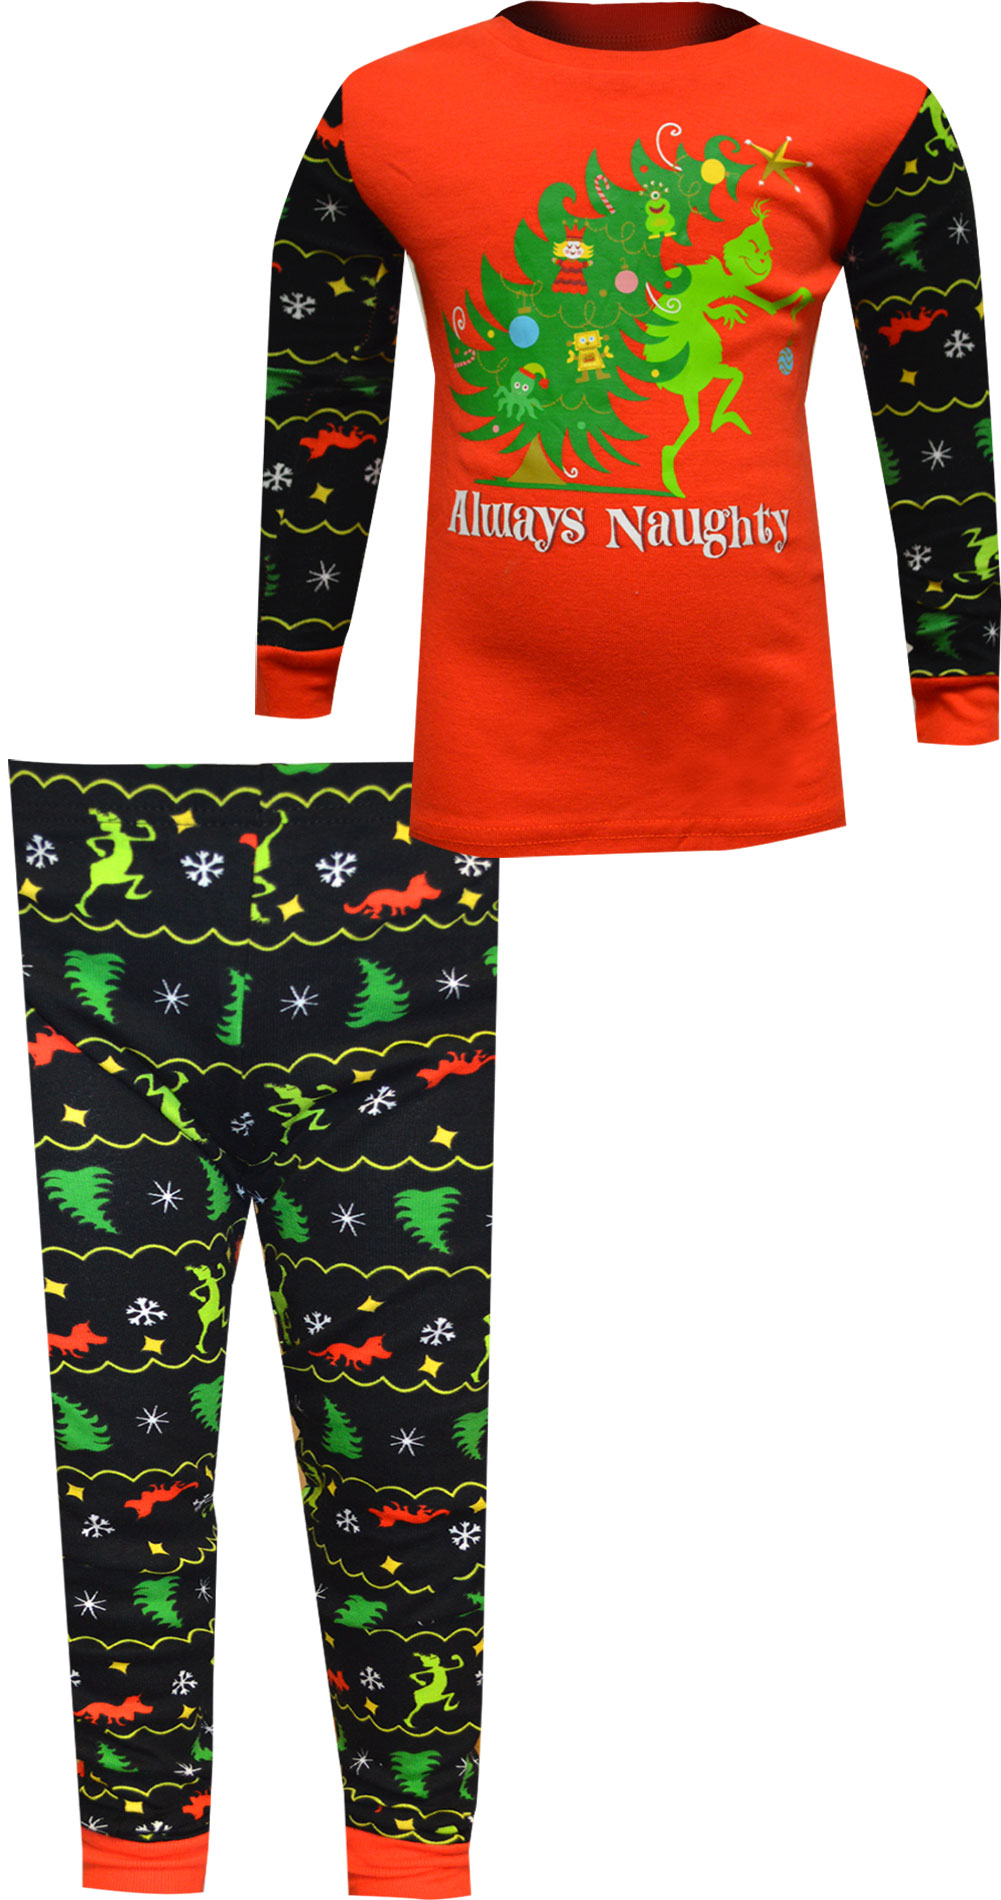 Image of Dr. Seuss The Grinch Always Naughty Boys Pajamas for boys